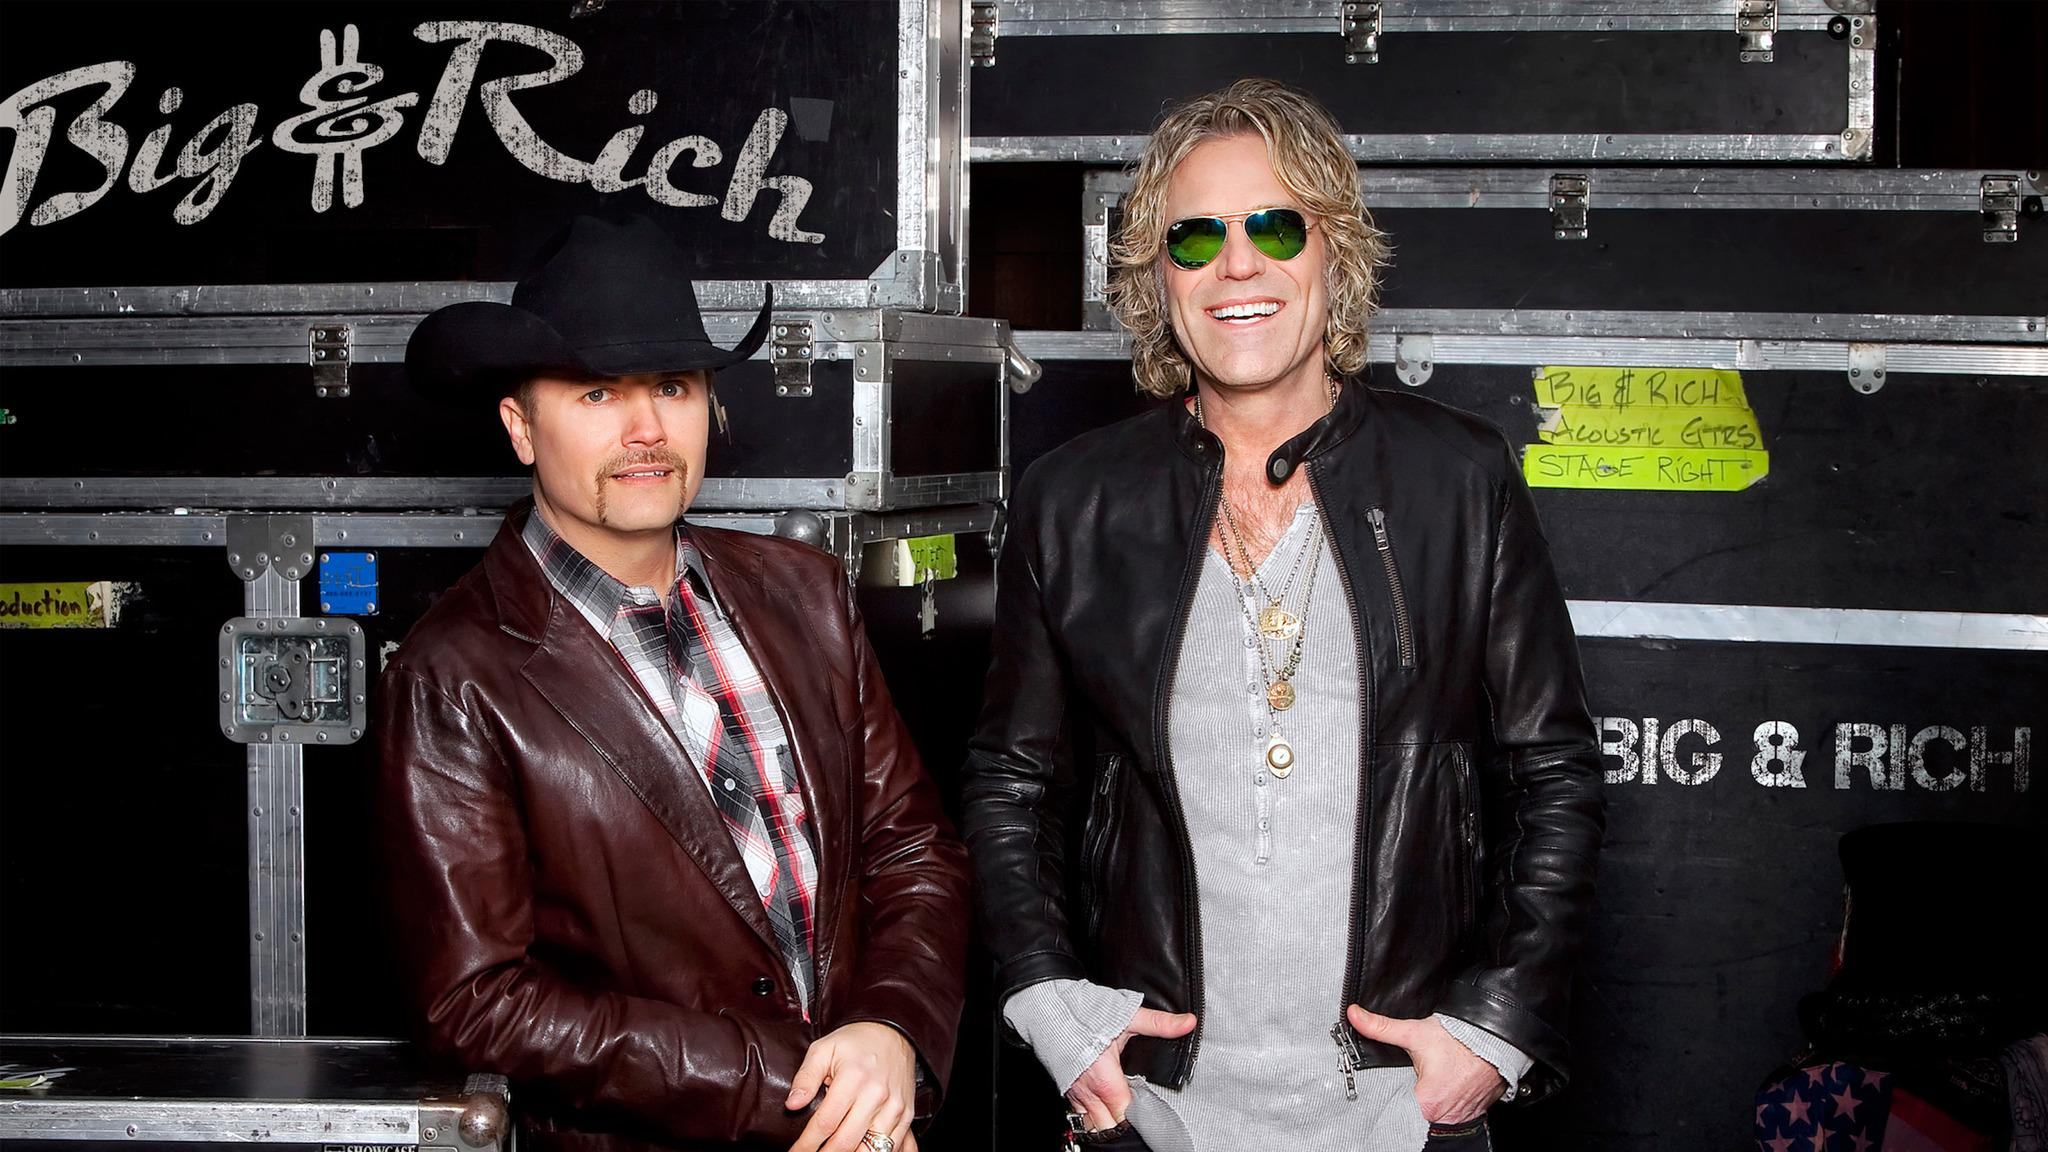 Big & Rich at Florida Strawberry Festival